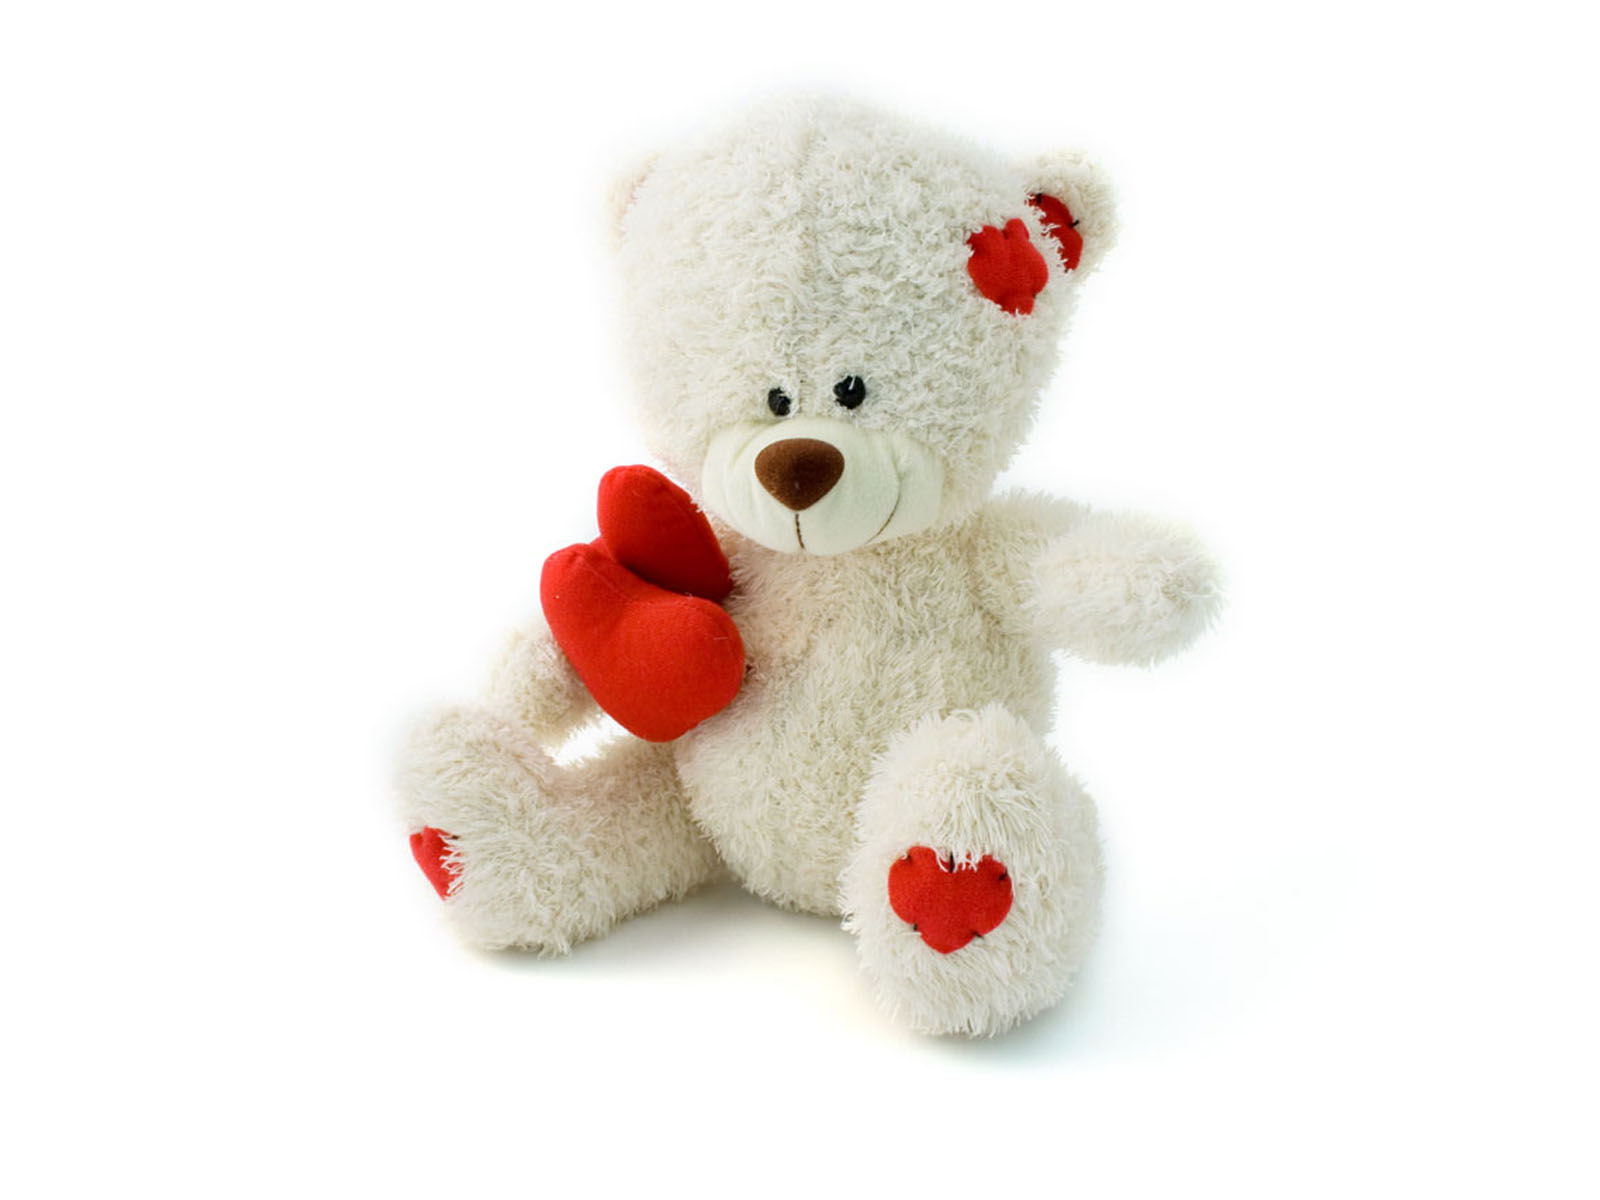 Cute Teddy Bear HD Wallpapers Free Download